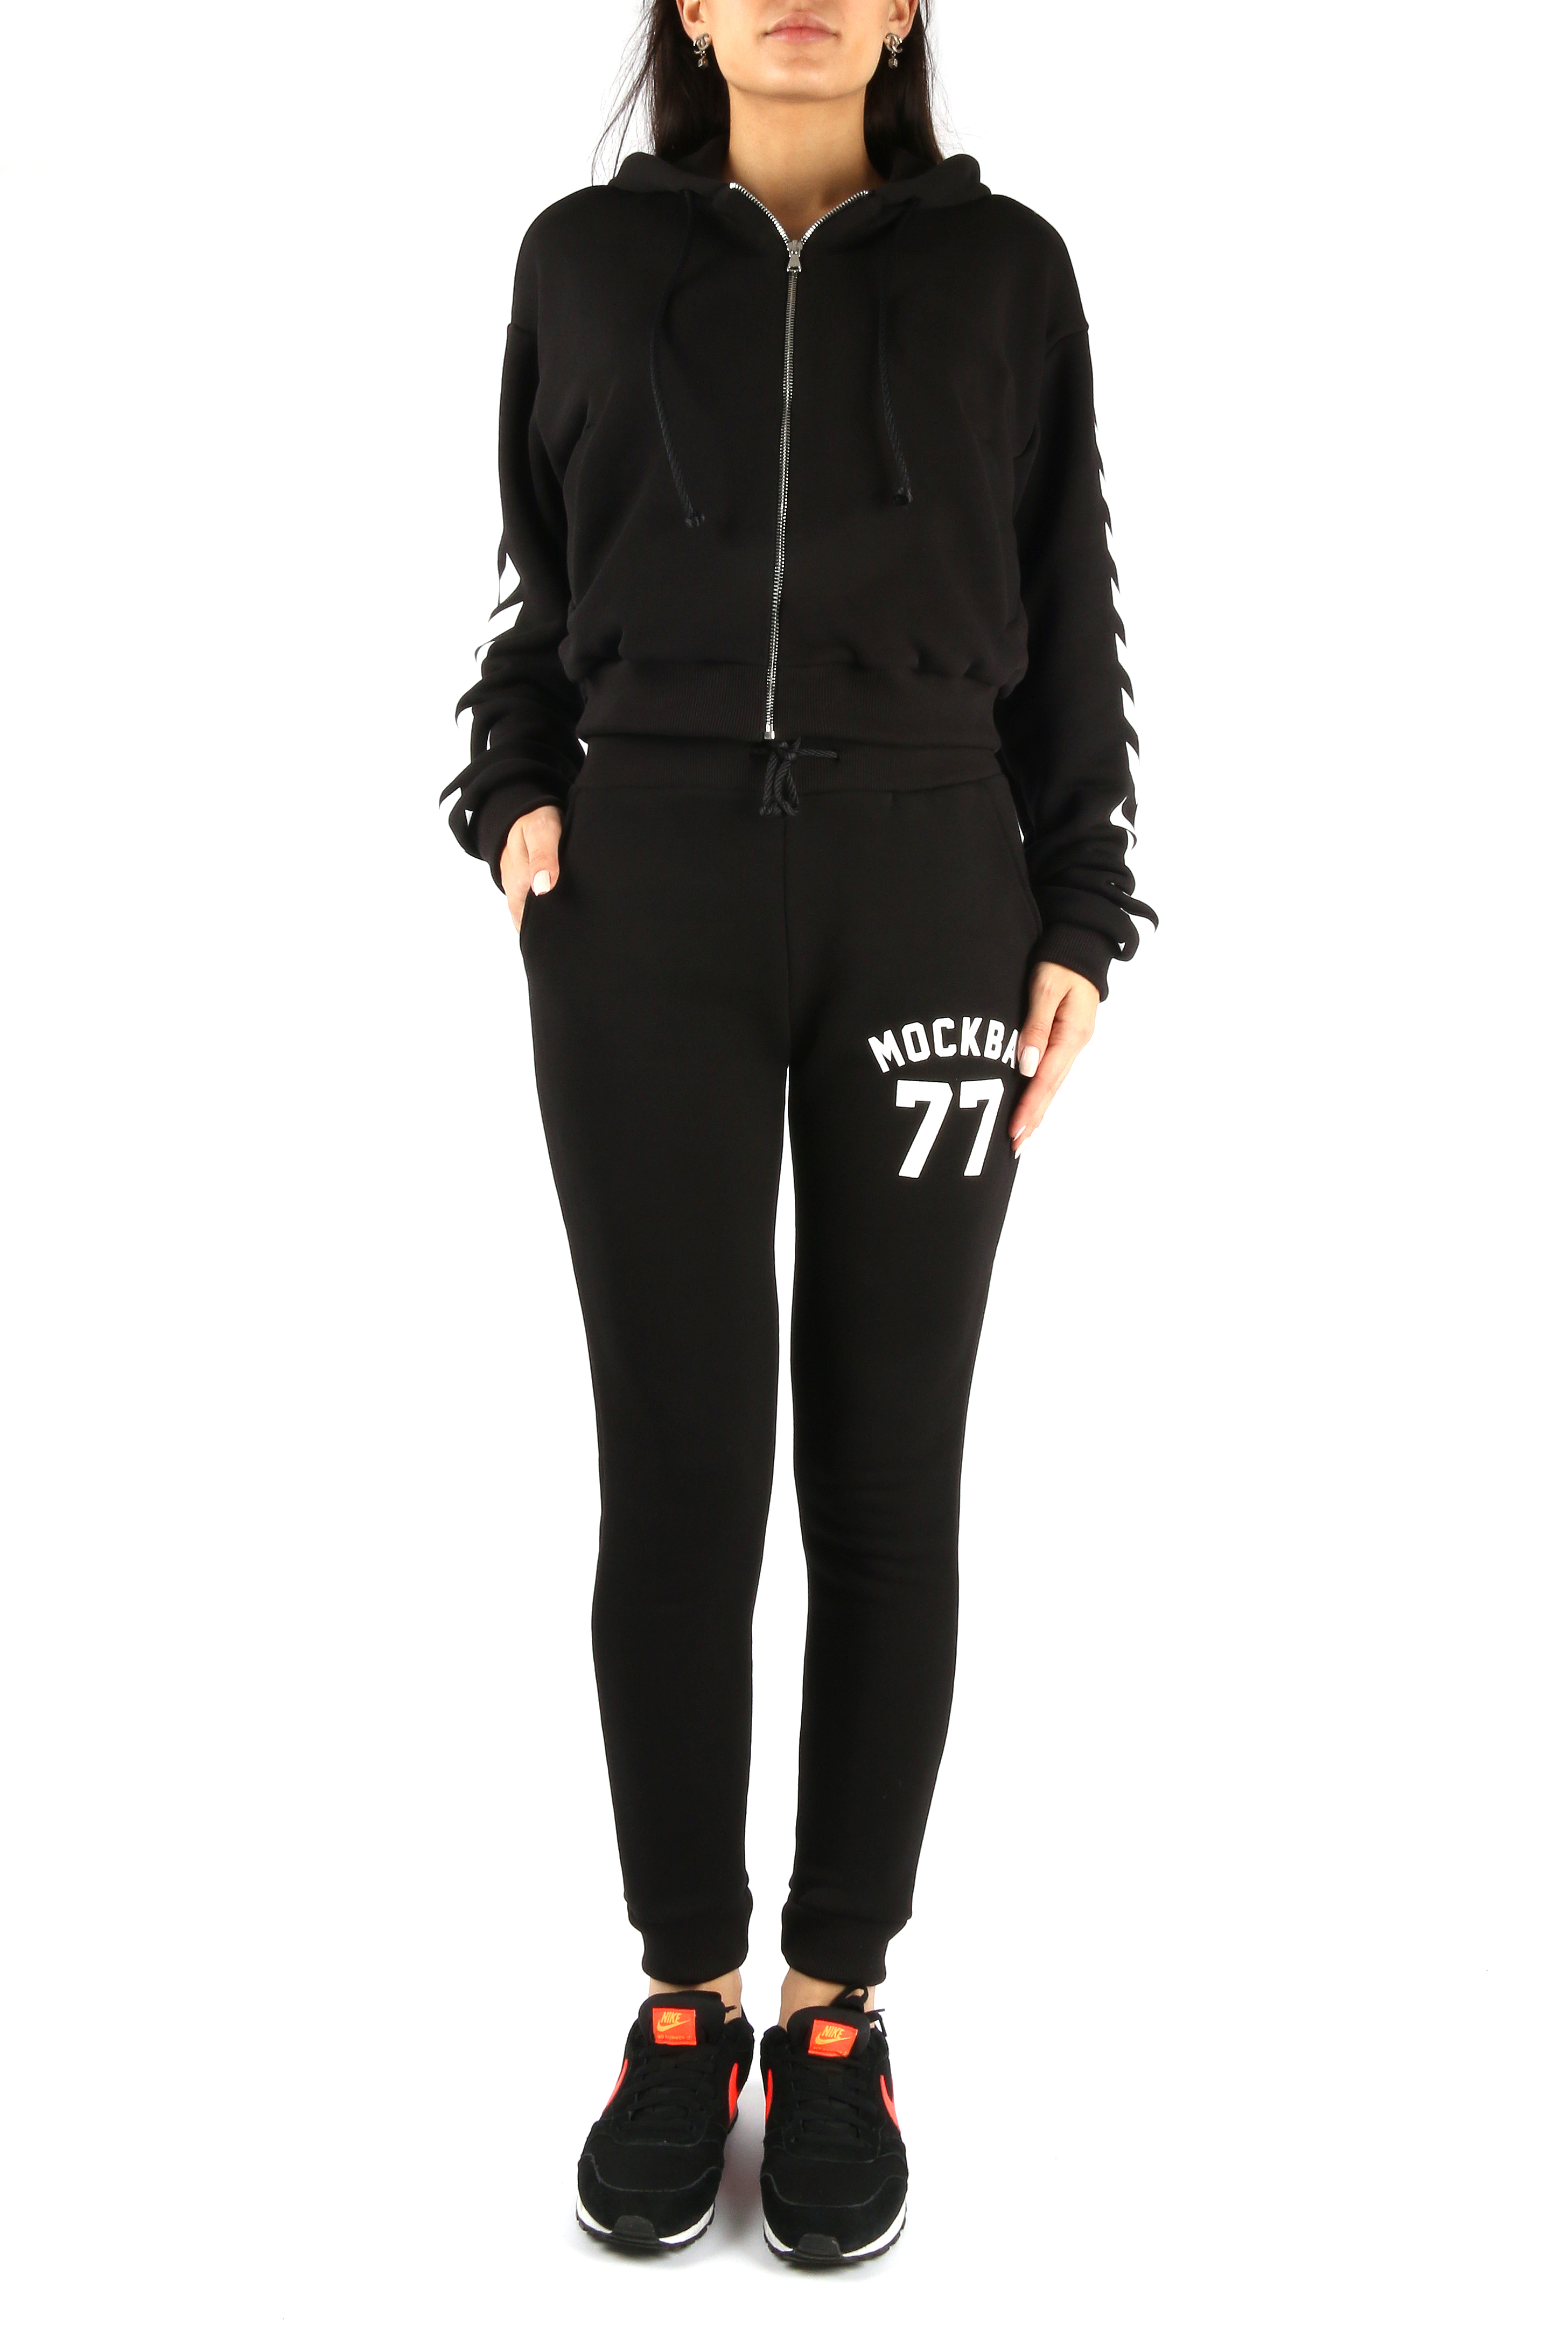 Womens sweatsuit Moscow 77Tracksuits<br>Womens sweatsuit by Black Star Wear. Zipped hoodie with stripes on the sleeves and big print Moscow 77 on the back. Sweatpants with little Moscow 77 print on the left side. Black cotton model with side pockets.<br><br>size: L<br>color: Black<br>gender: female